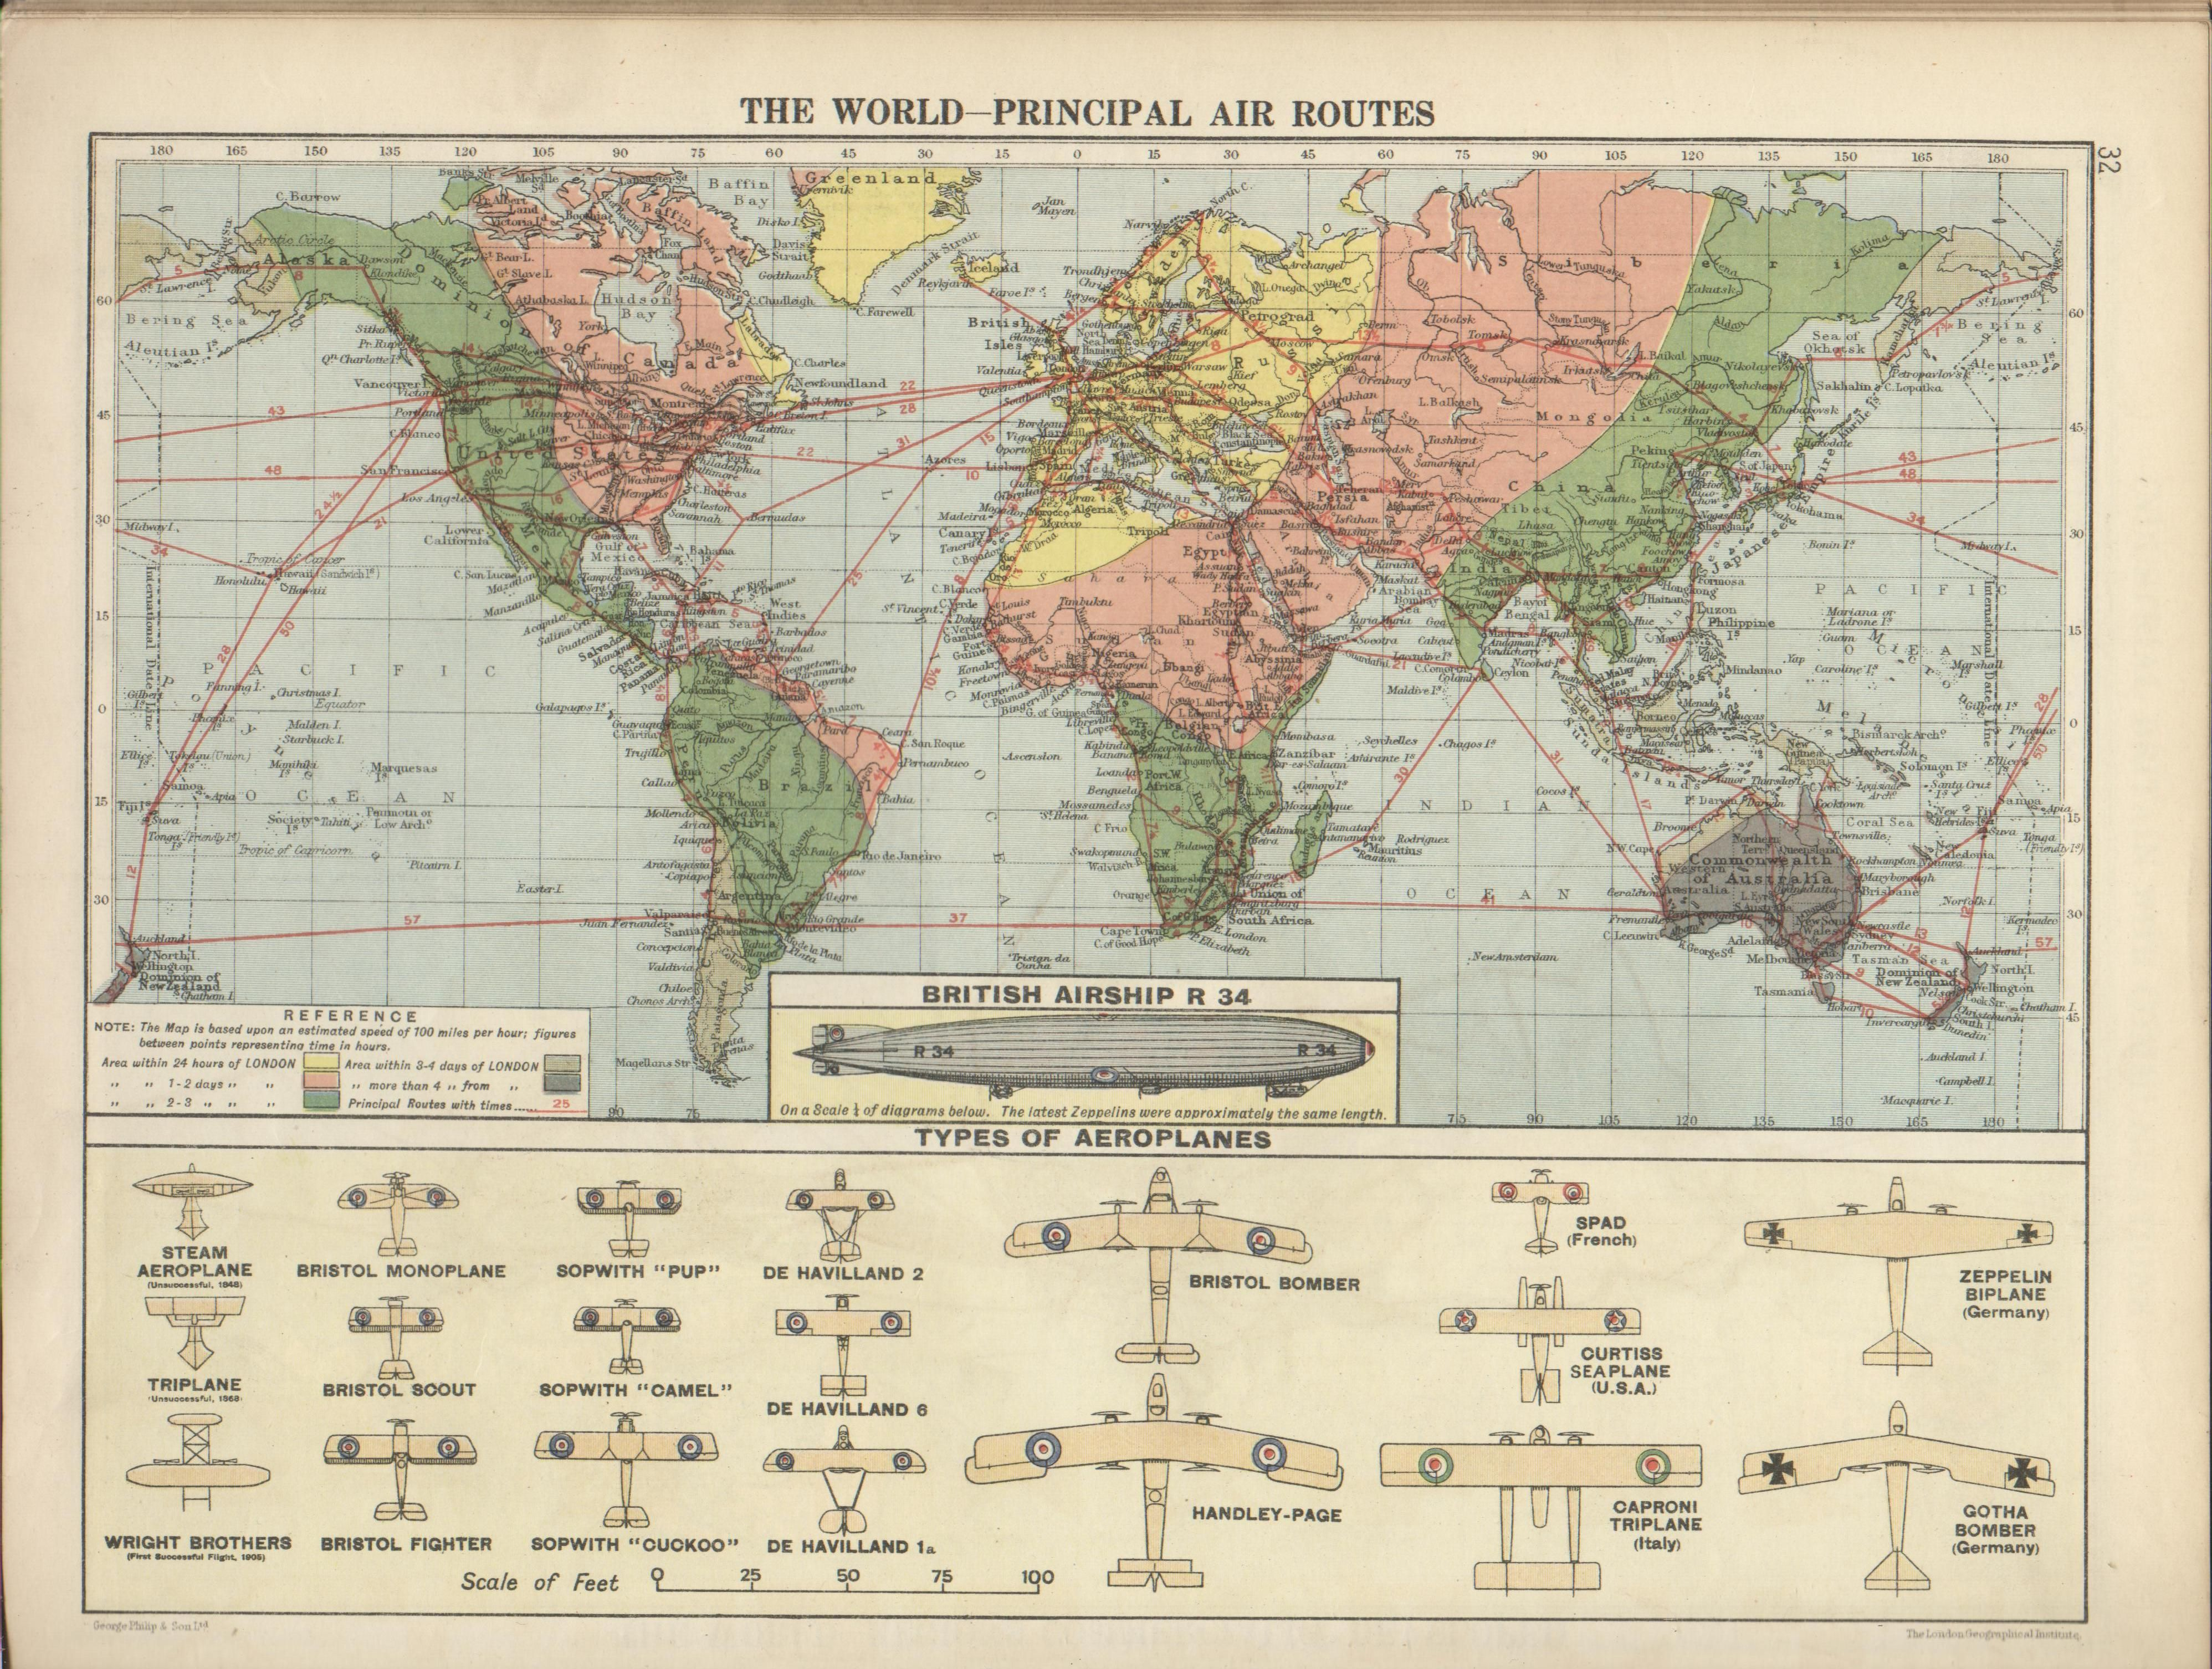 World Map With Principal Air Routes As Well As Examples Of - World map 1340 1600